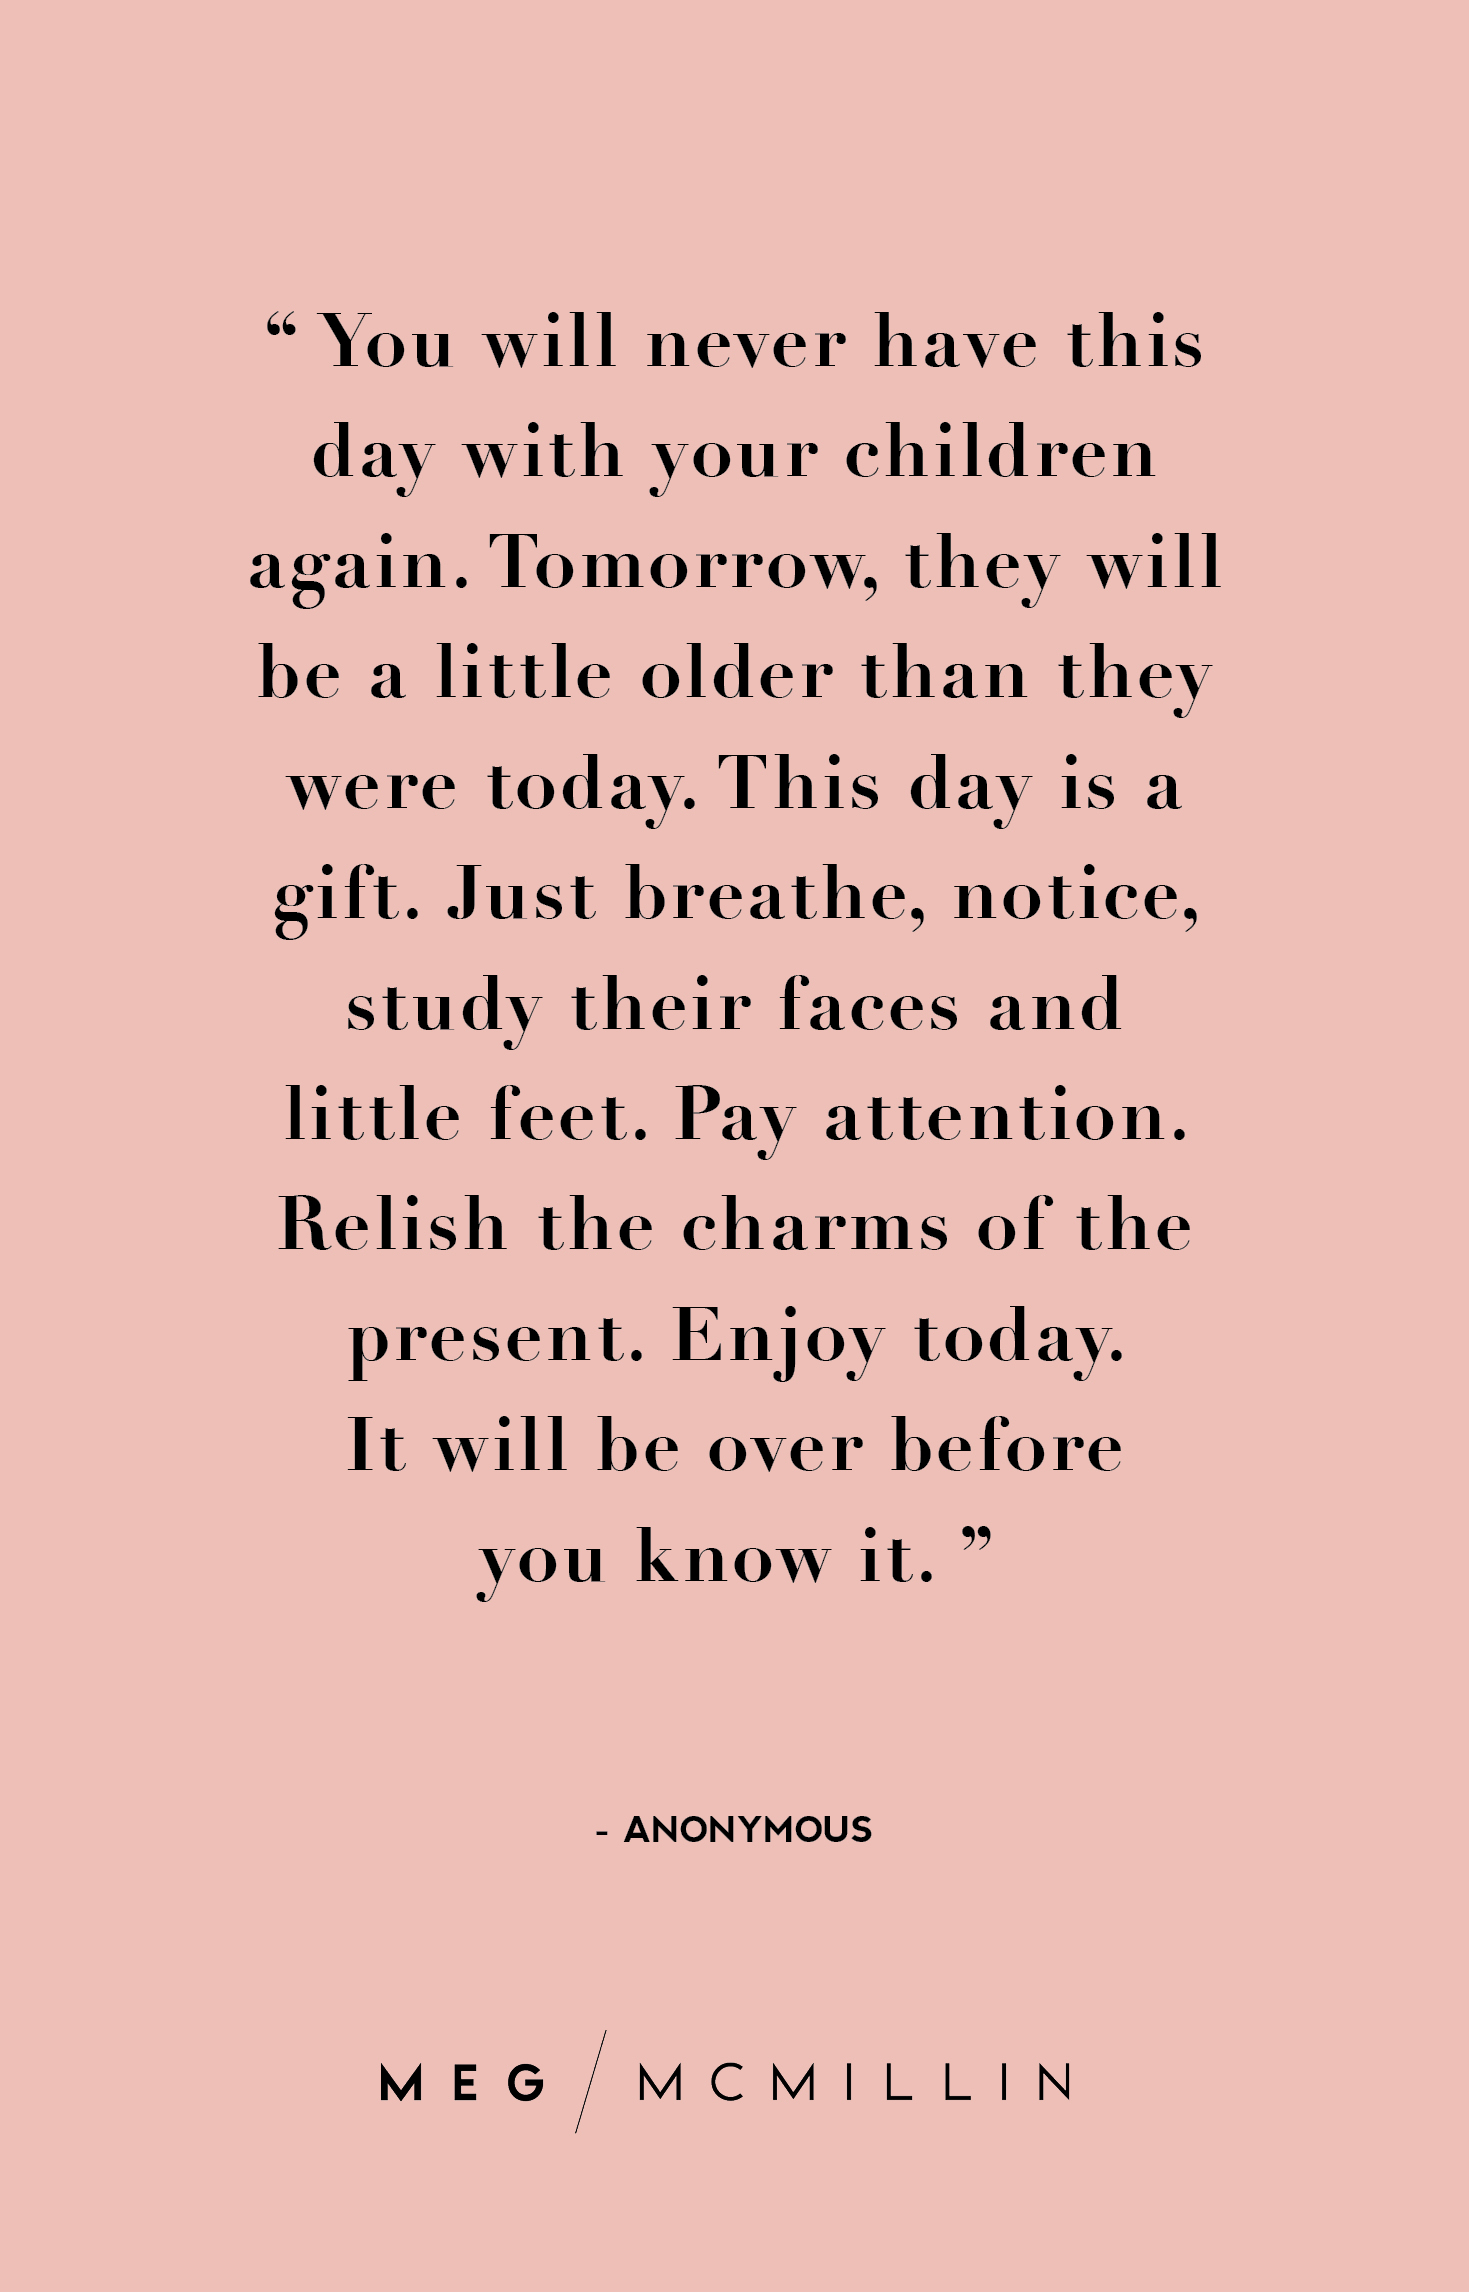 Quotes To Get You Through The Day 10 Inspiring Mom Quotes To Get You Through A Tough Day  Meg Mcmillin